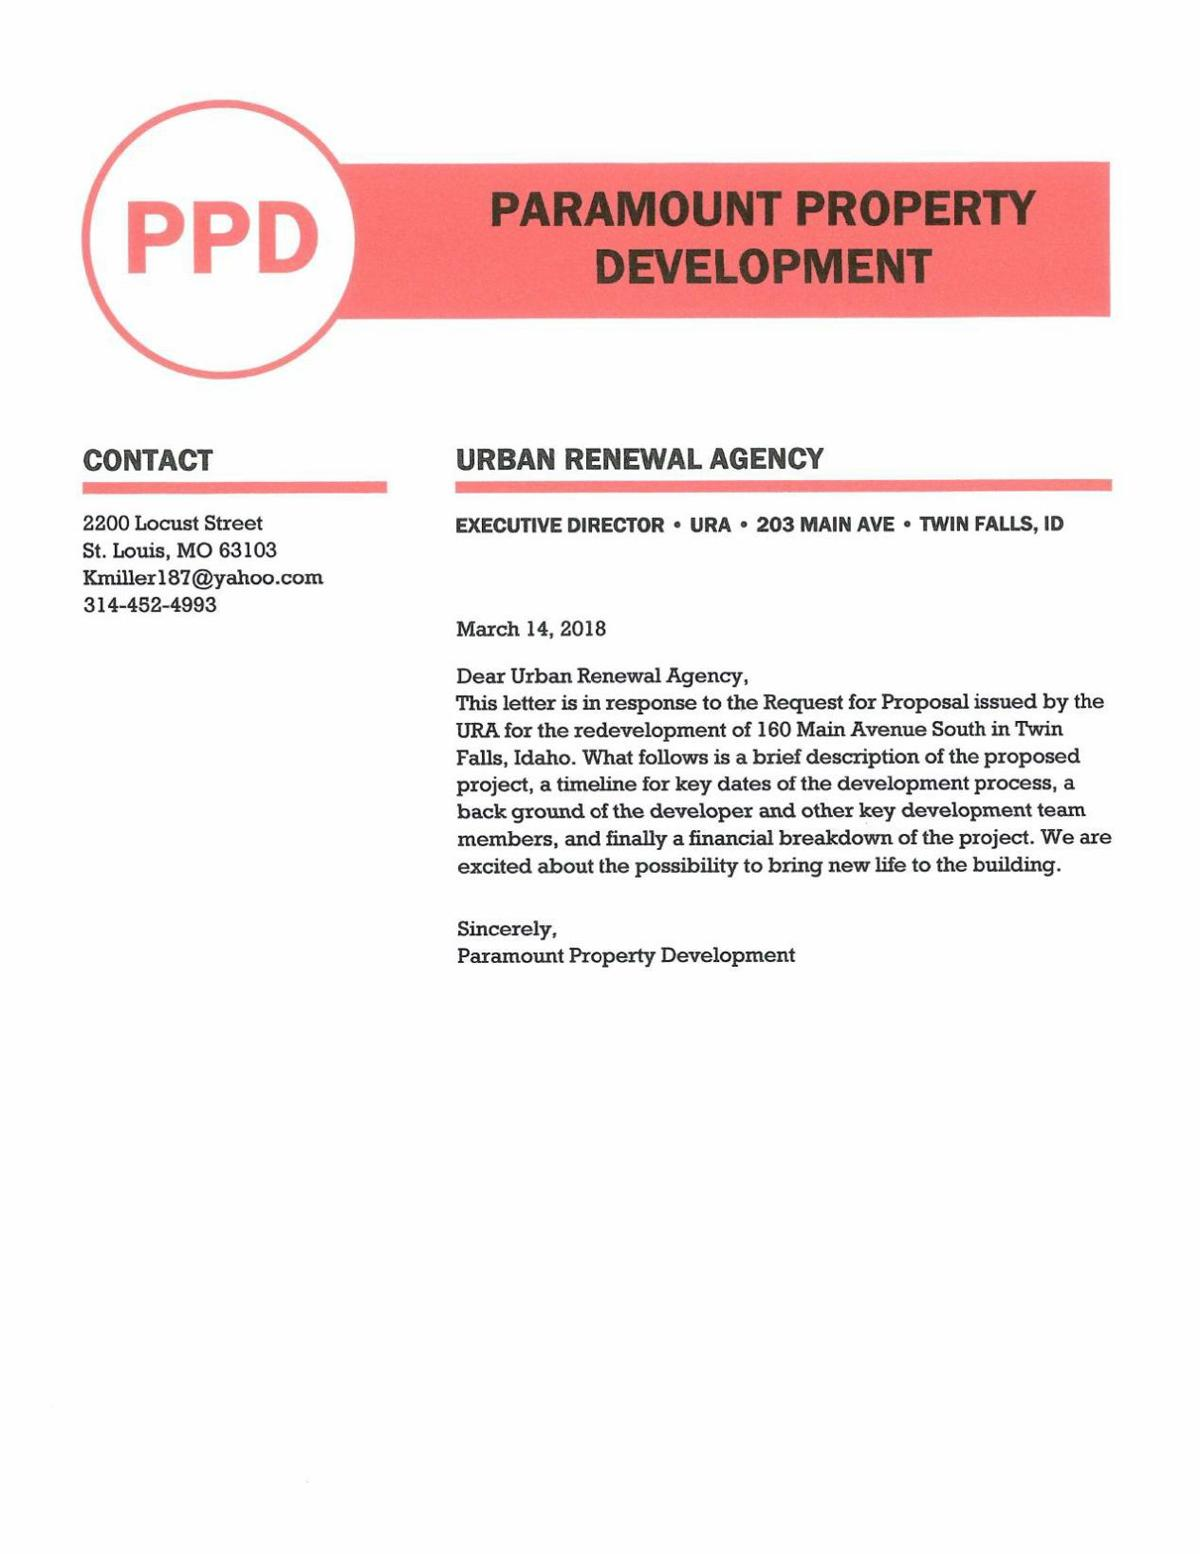 Paramount Property Development proposal